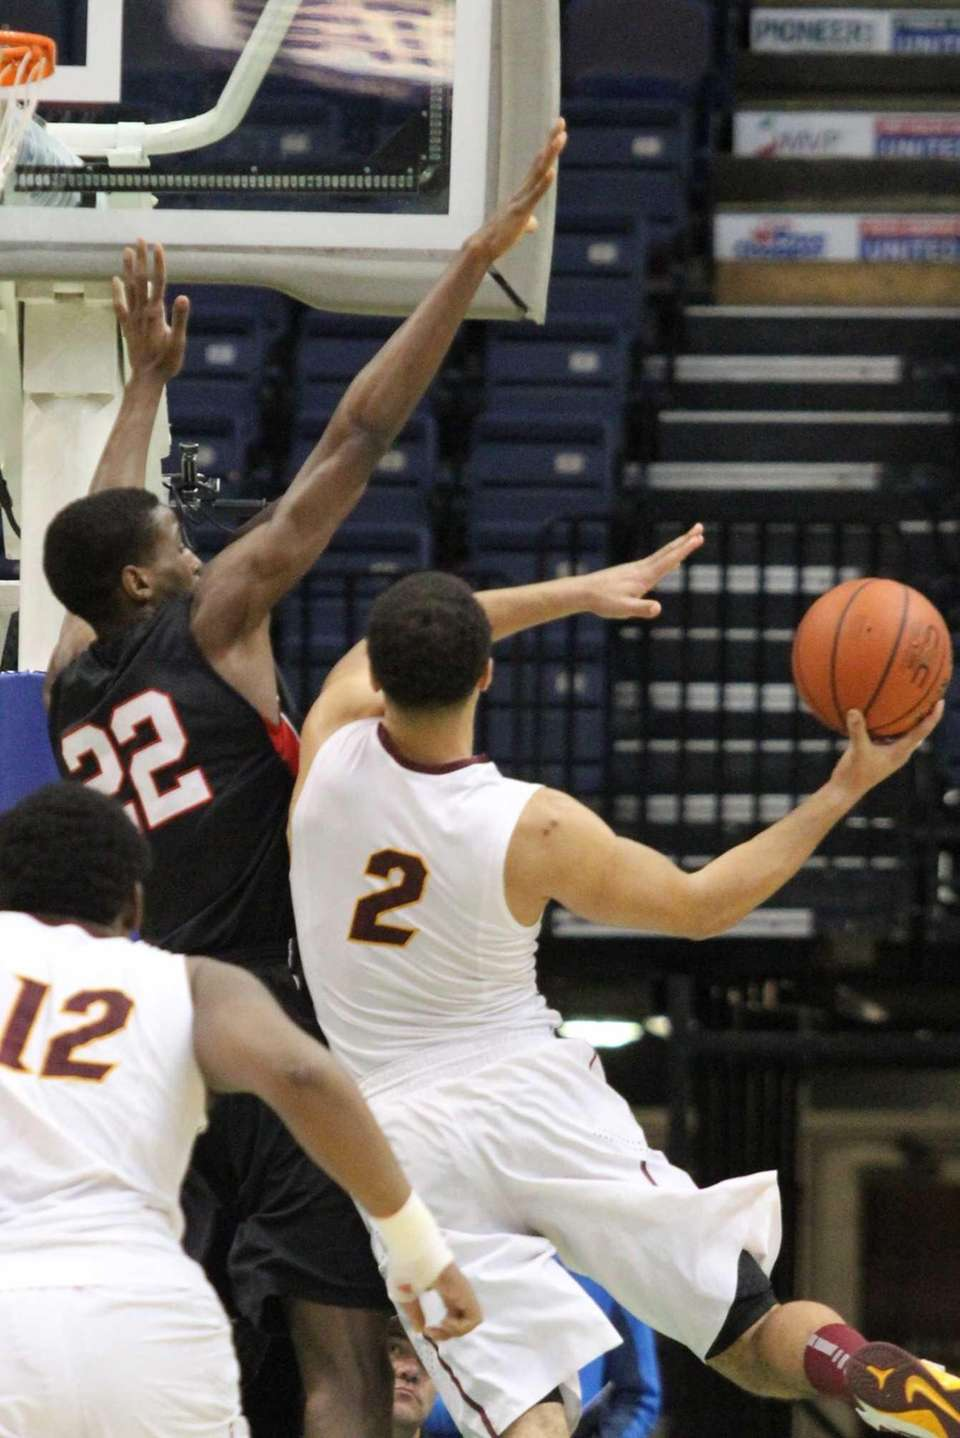 Long Island Lutheran's Kentan Facey goes for the